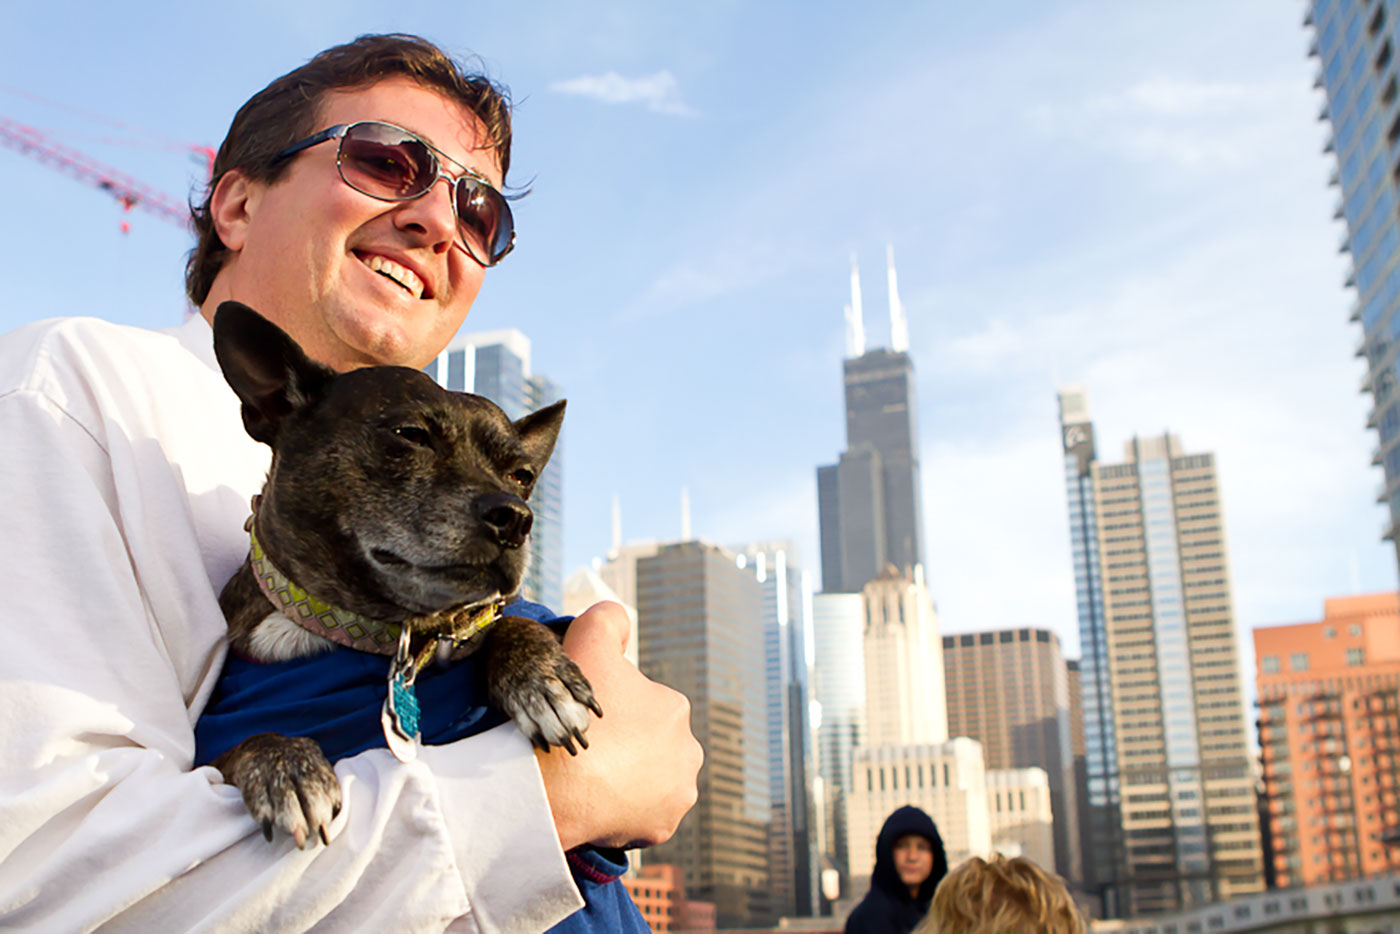 Man in black sunglasses on a boat holding small black dog with Chicago skyline in background